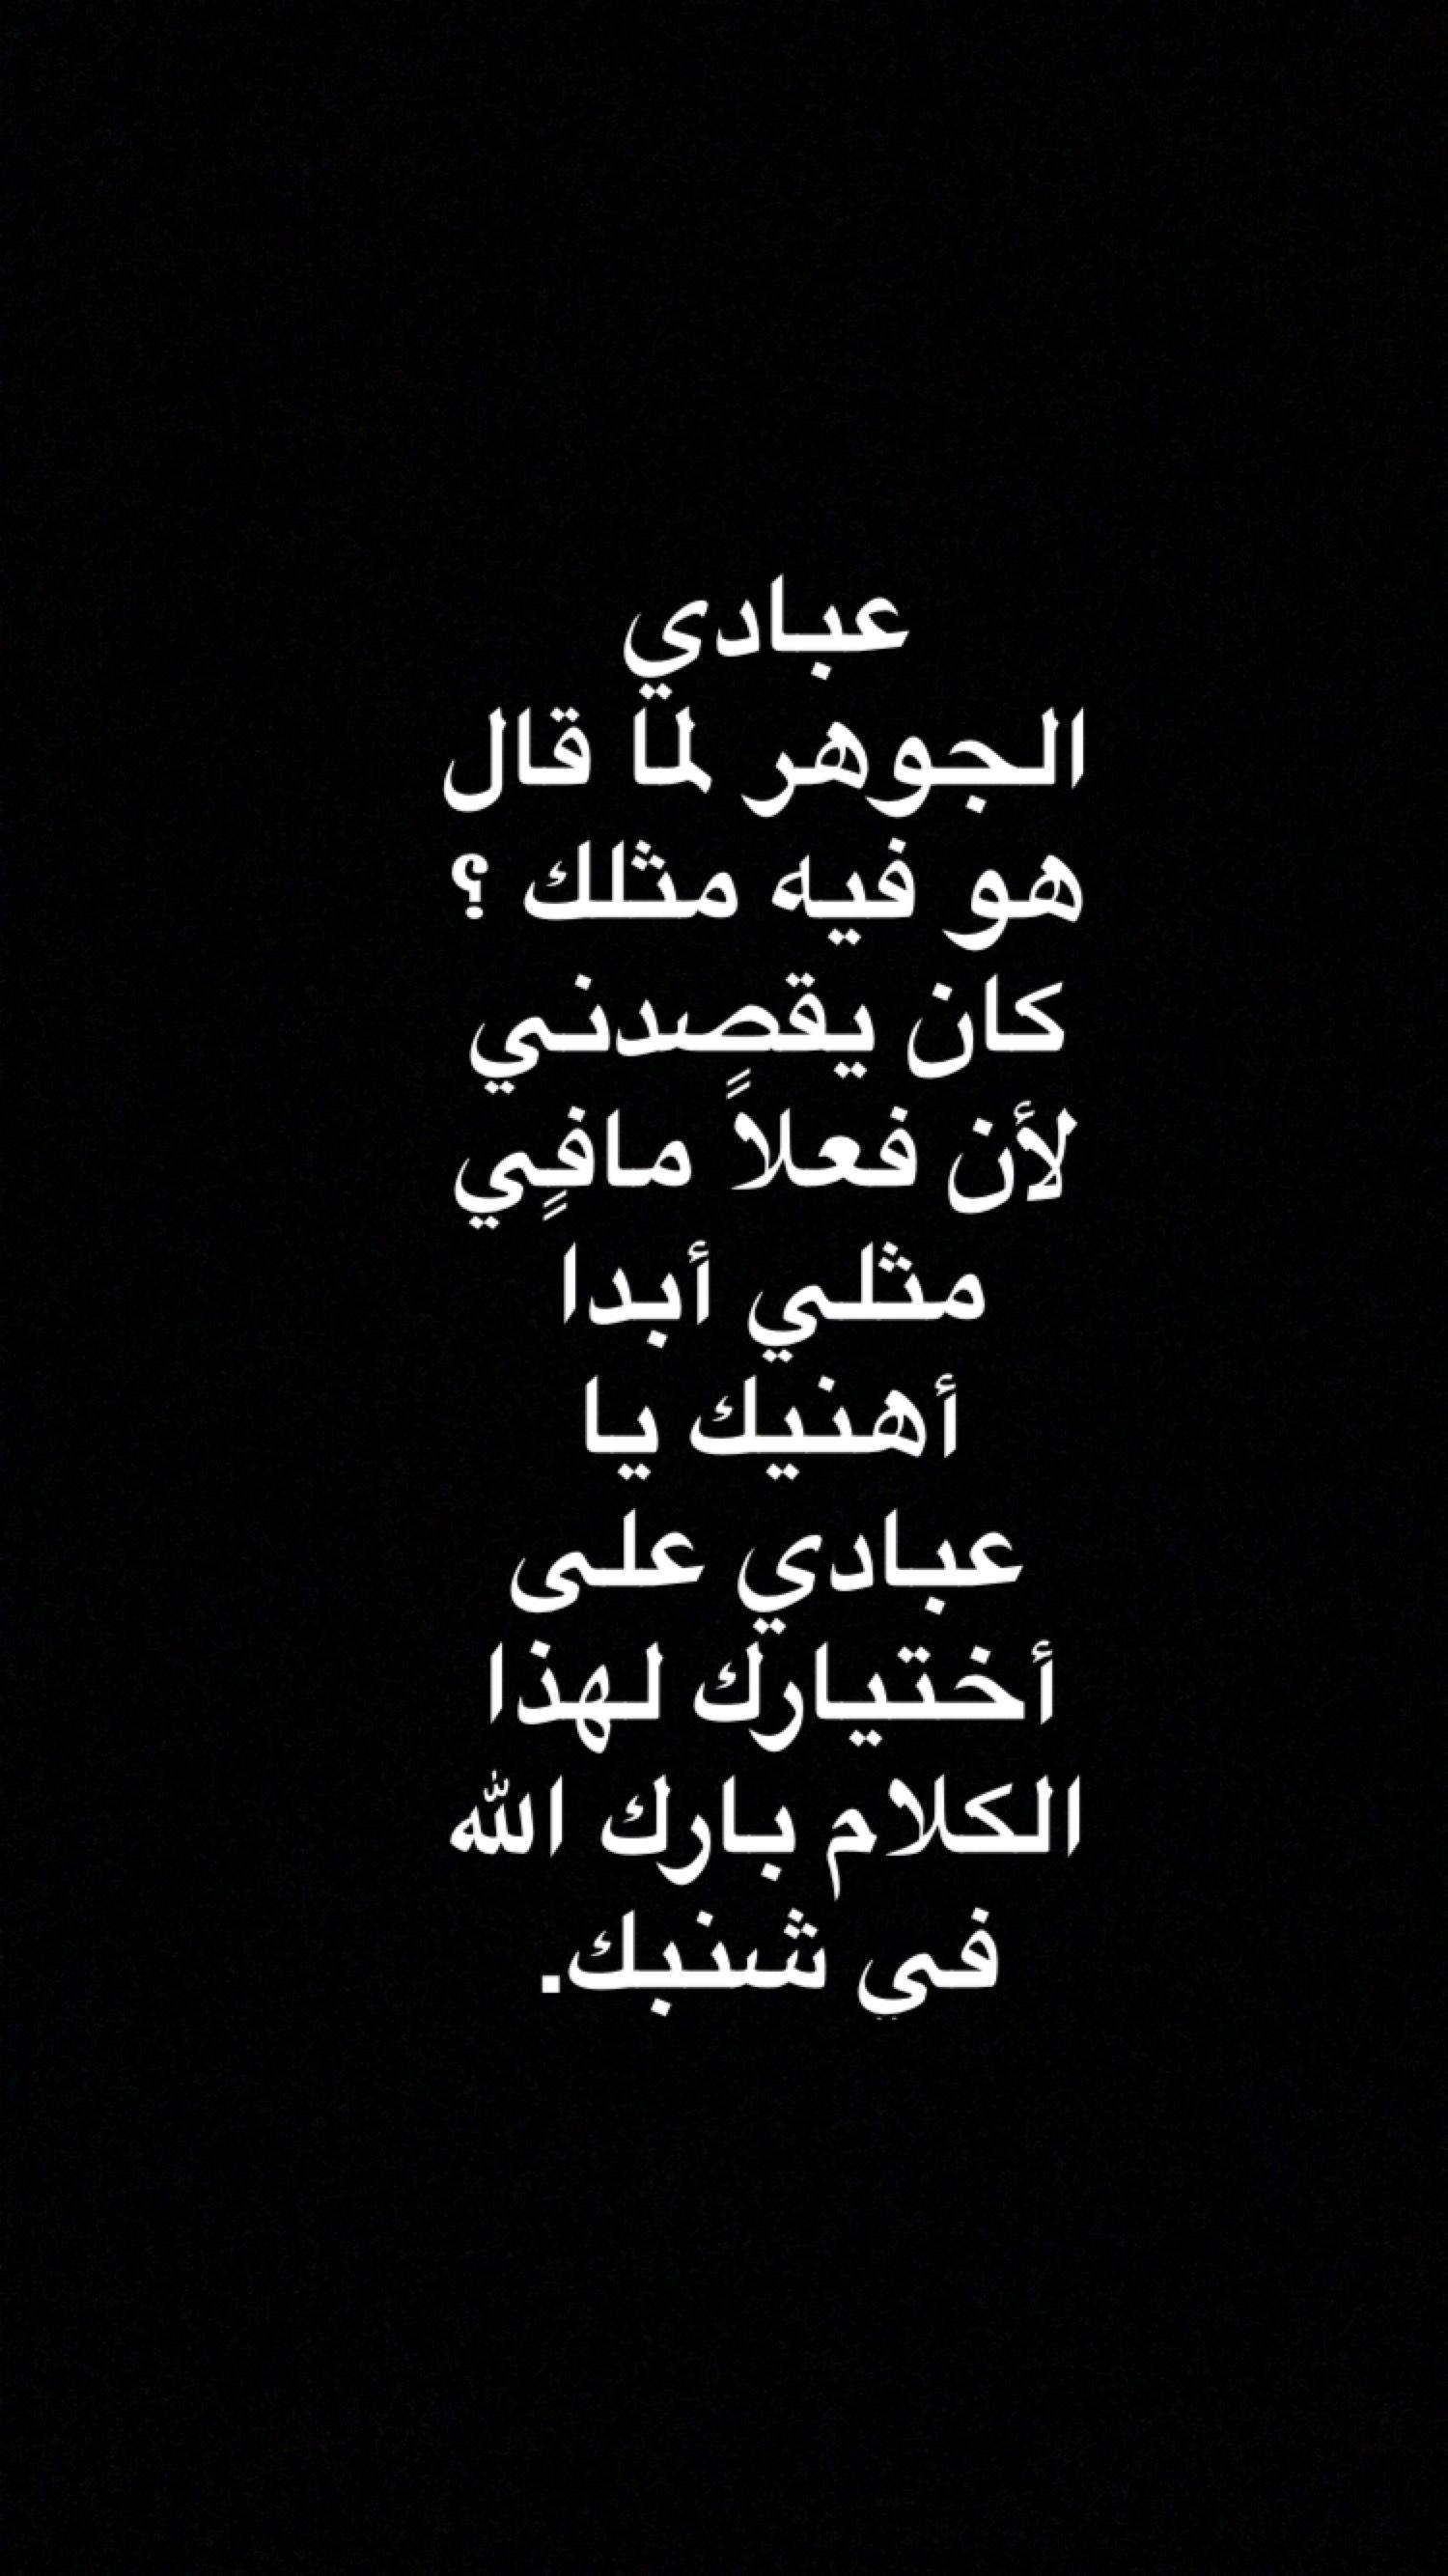 Pin By Salouh On رياكشنات Funny Arabic Quotes Wisdom Quotes Life Instagram Words